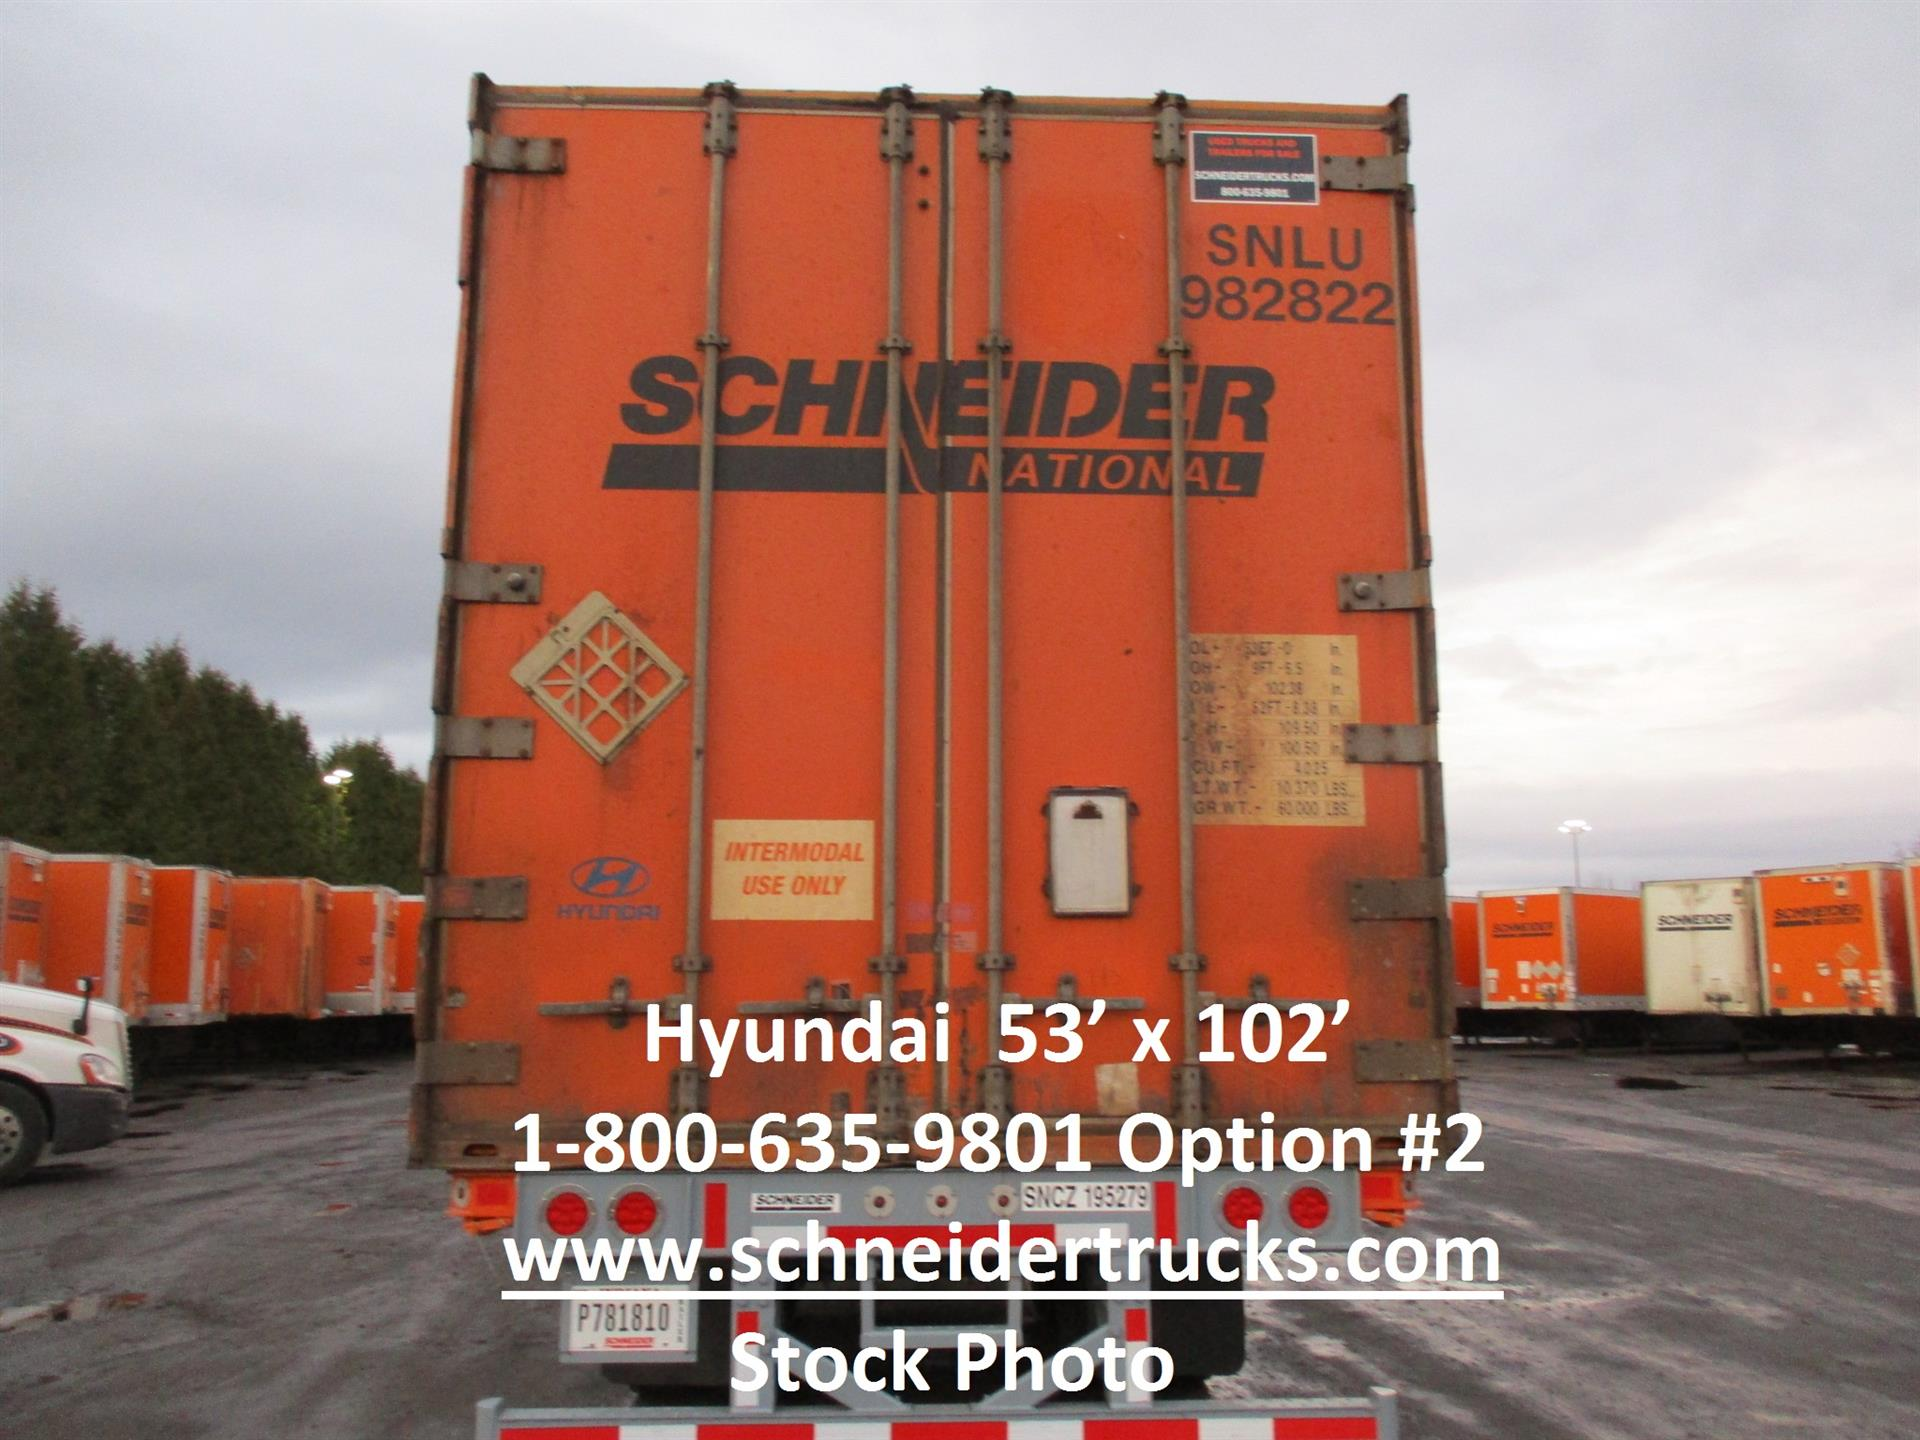 2006 Hyundai Container for sale-59265970